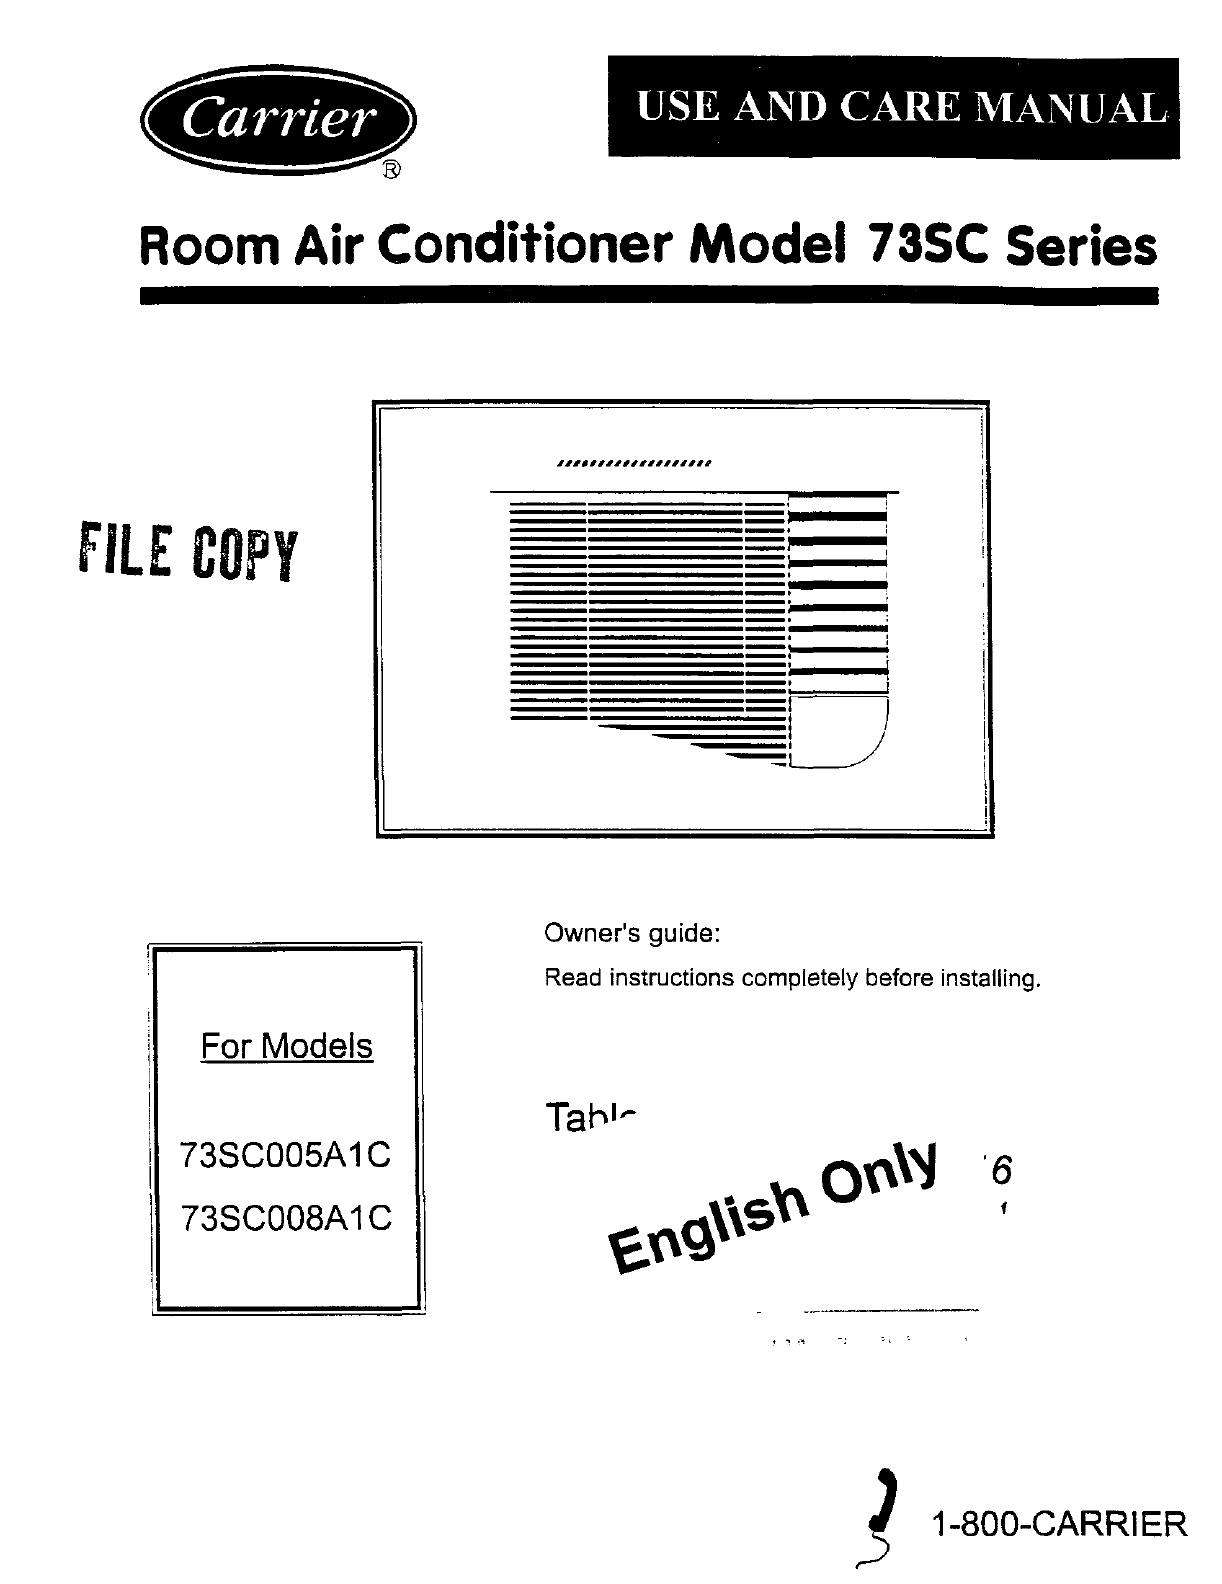 carrier air conditioner 73sc005a1c user guide manualsonline com rh fitness manualsonline com carrier service manuals download carrier user manual air conditioner